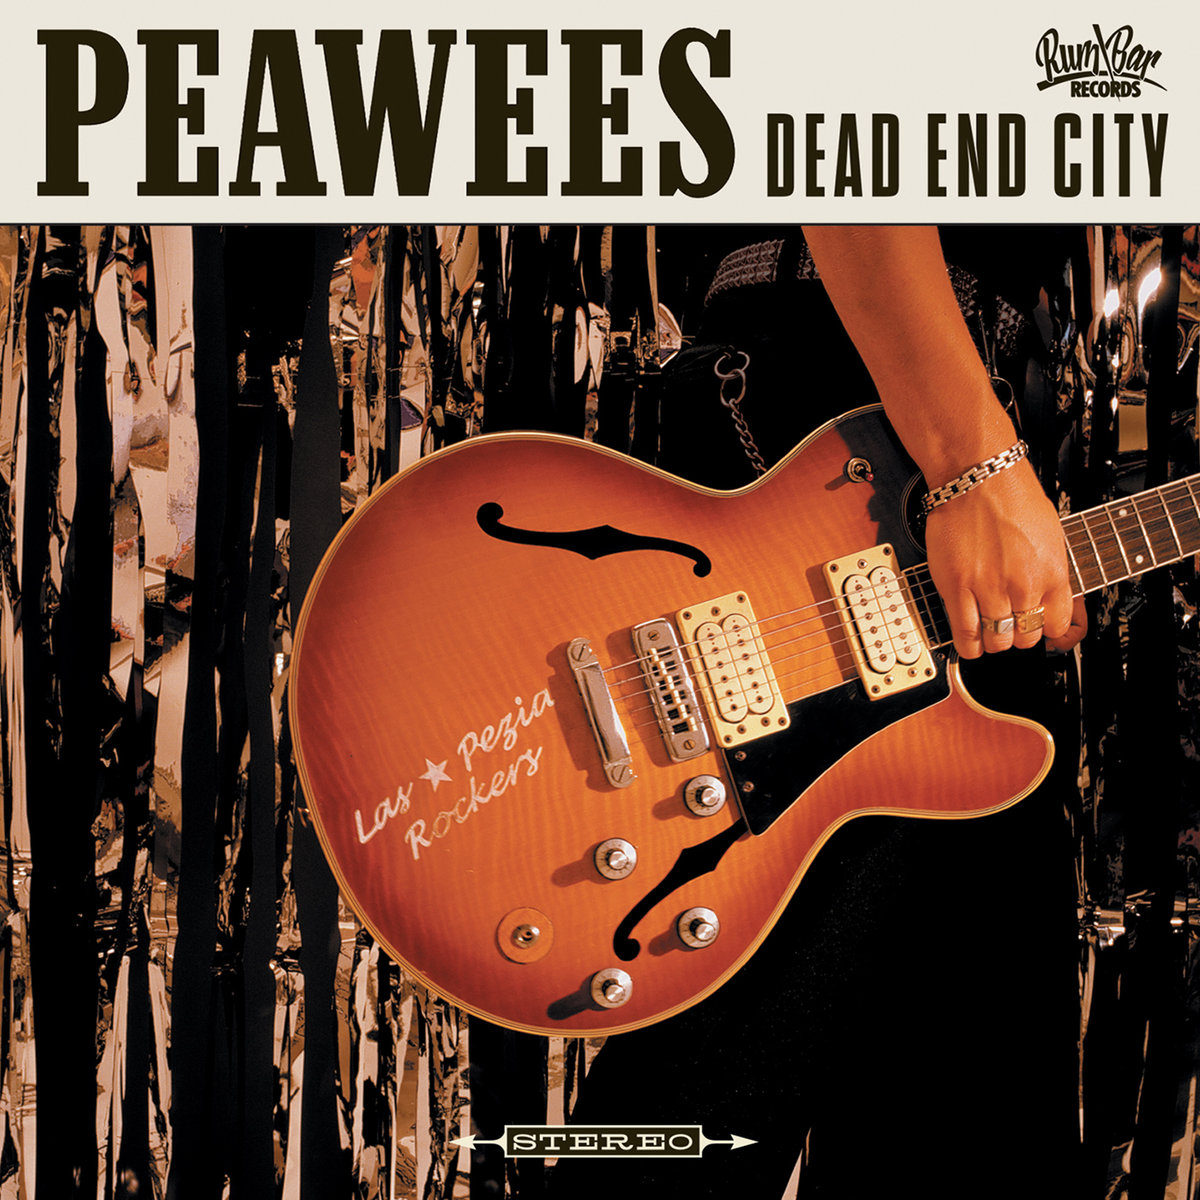 PEAWEES – Dead End City [Reissue]